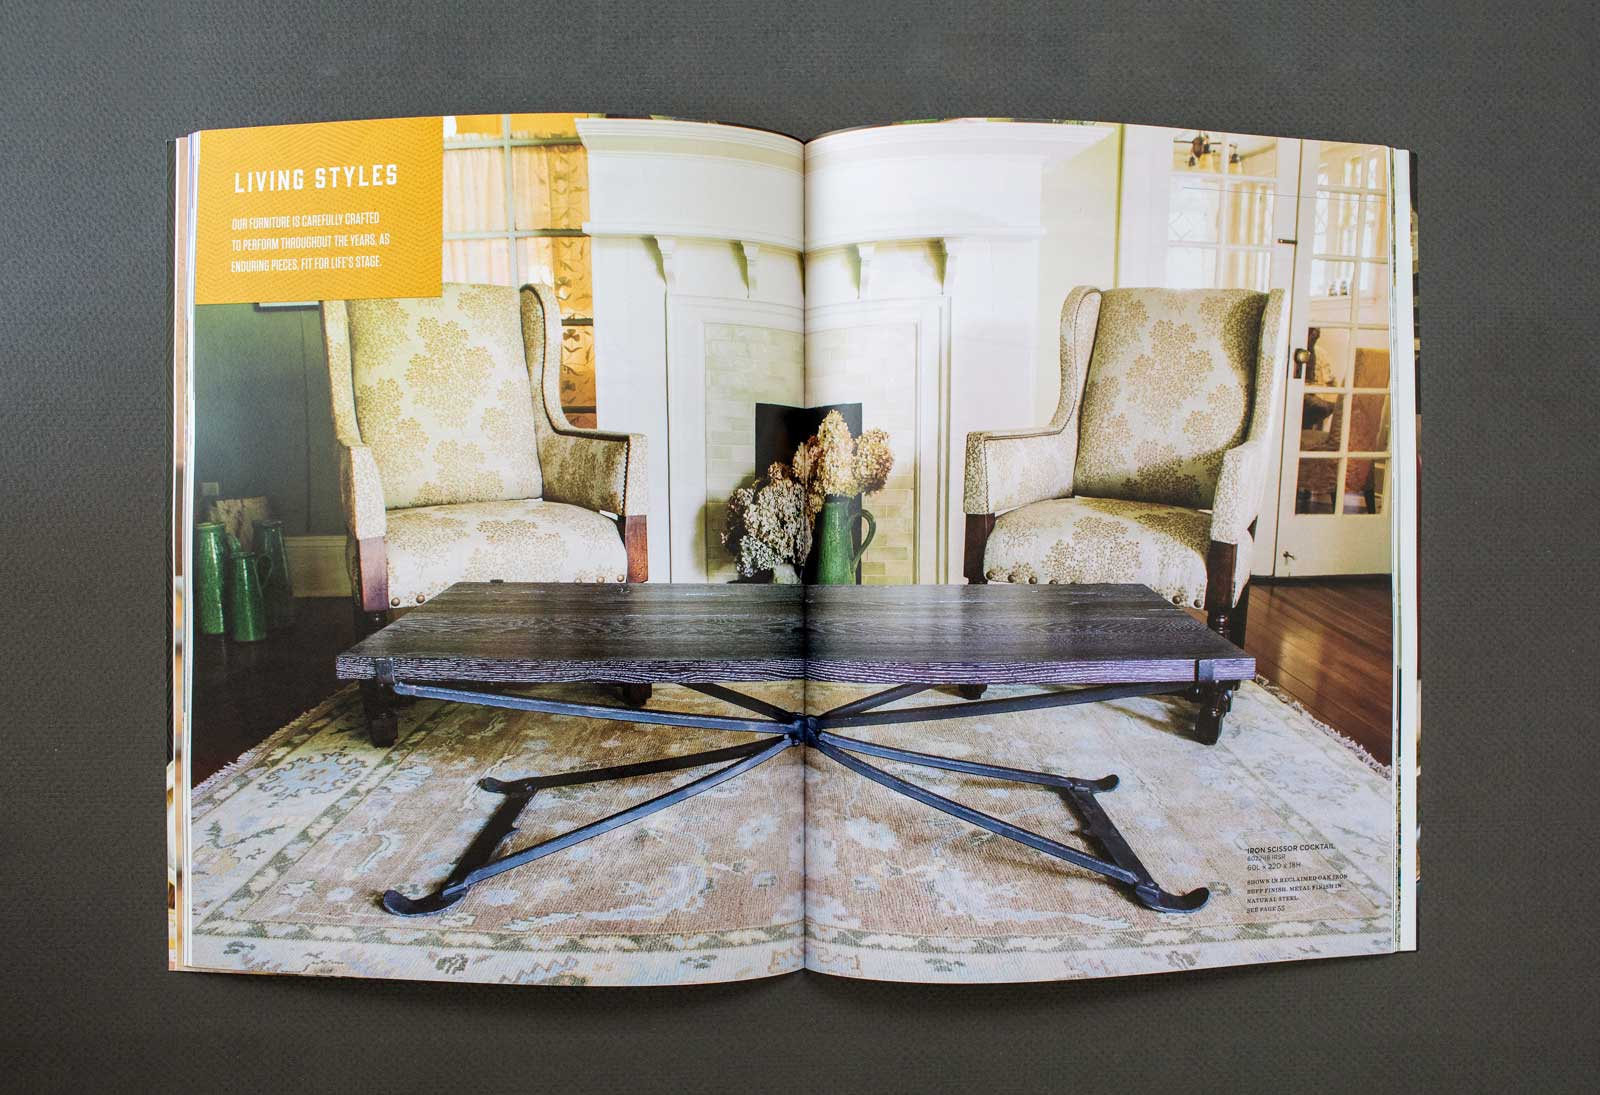 Old Wood Furniture Company catalog spread shows a large coffee table with organic metal legs